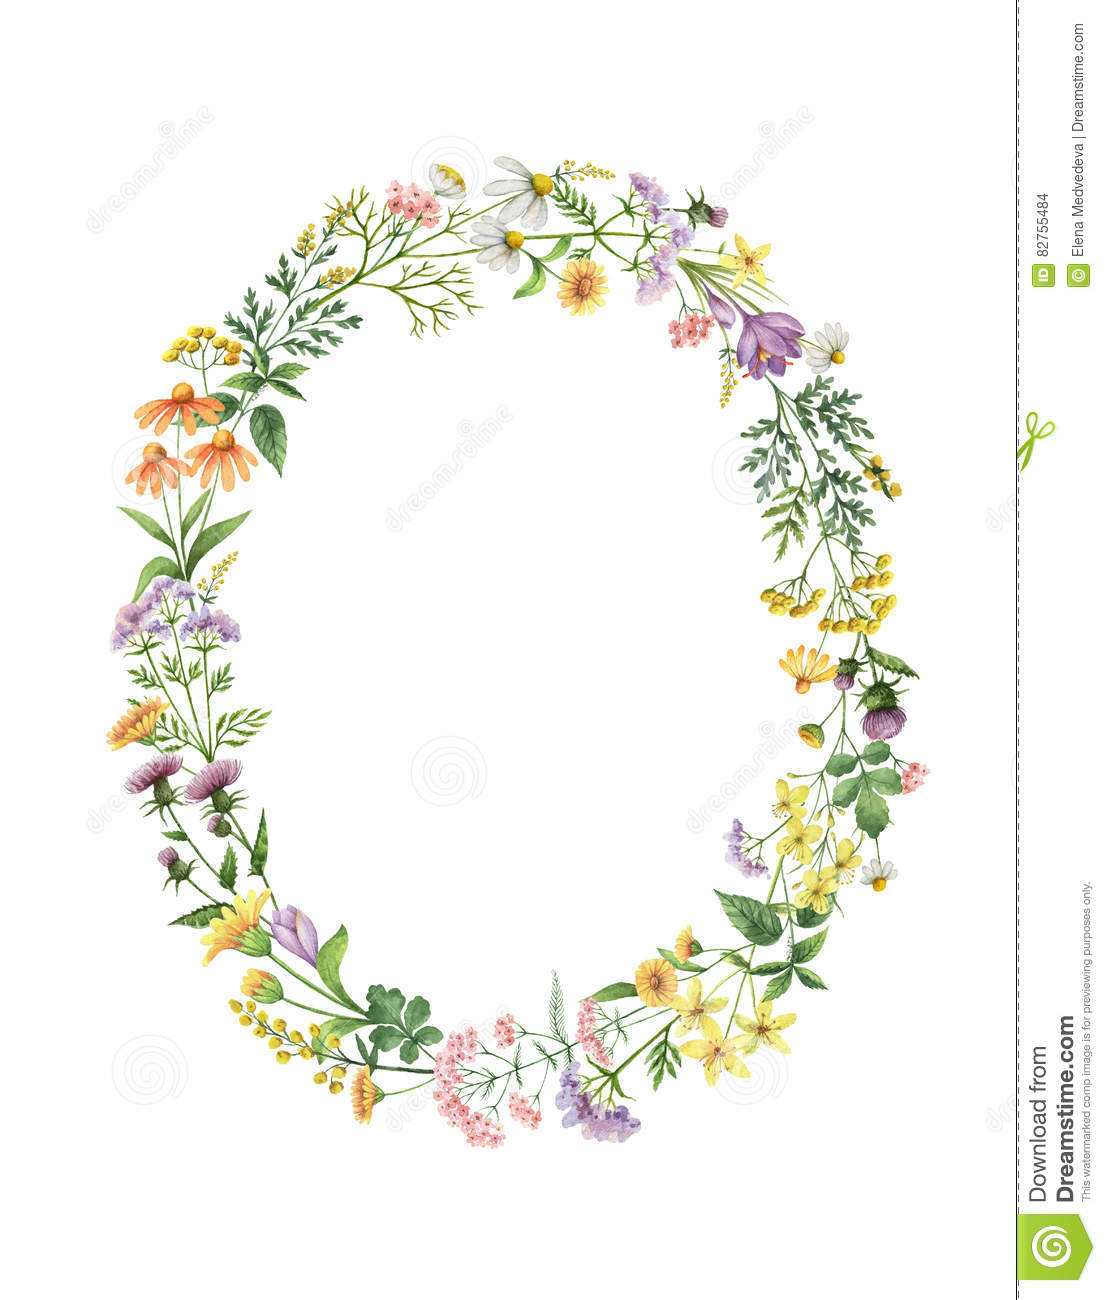 Watercolor Oval Wreath With Meadow Plants. Stock Illustration.